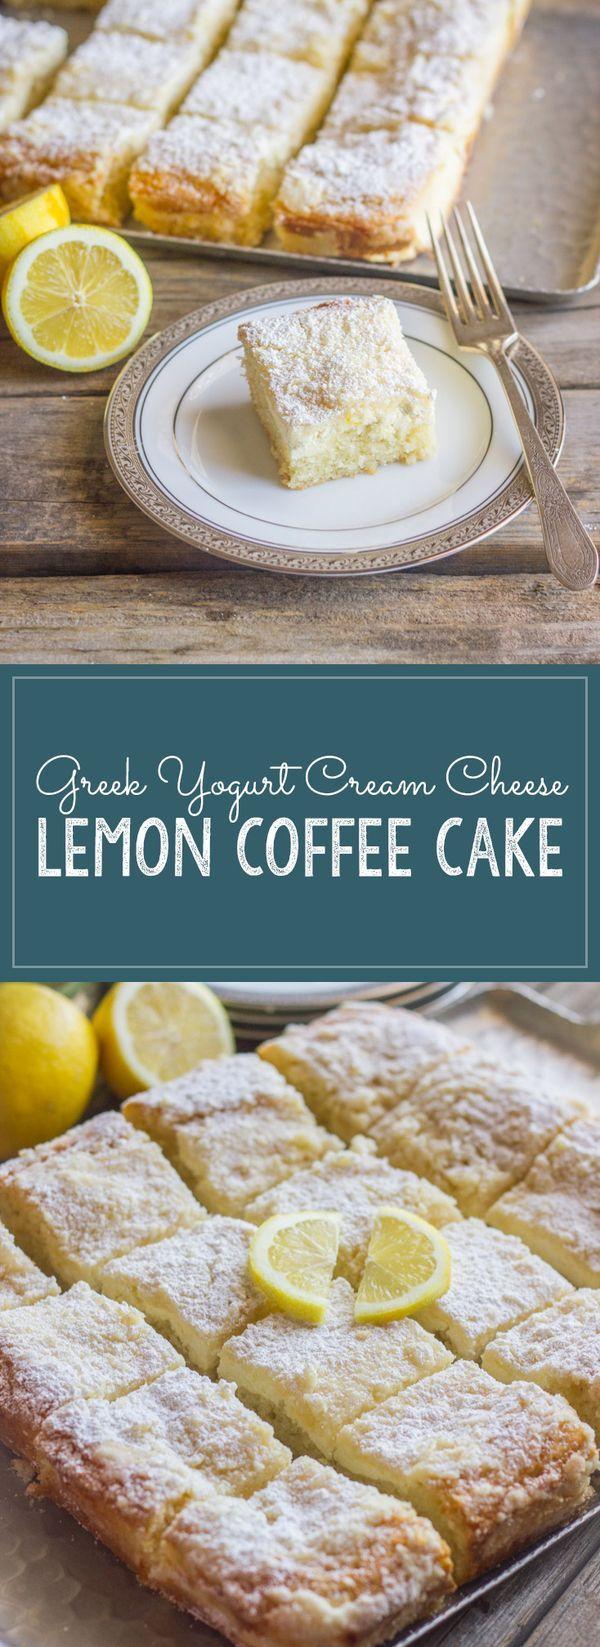 Sweet and moist with a light lemon flavor and a creamy, crumbly topping